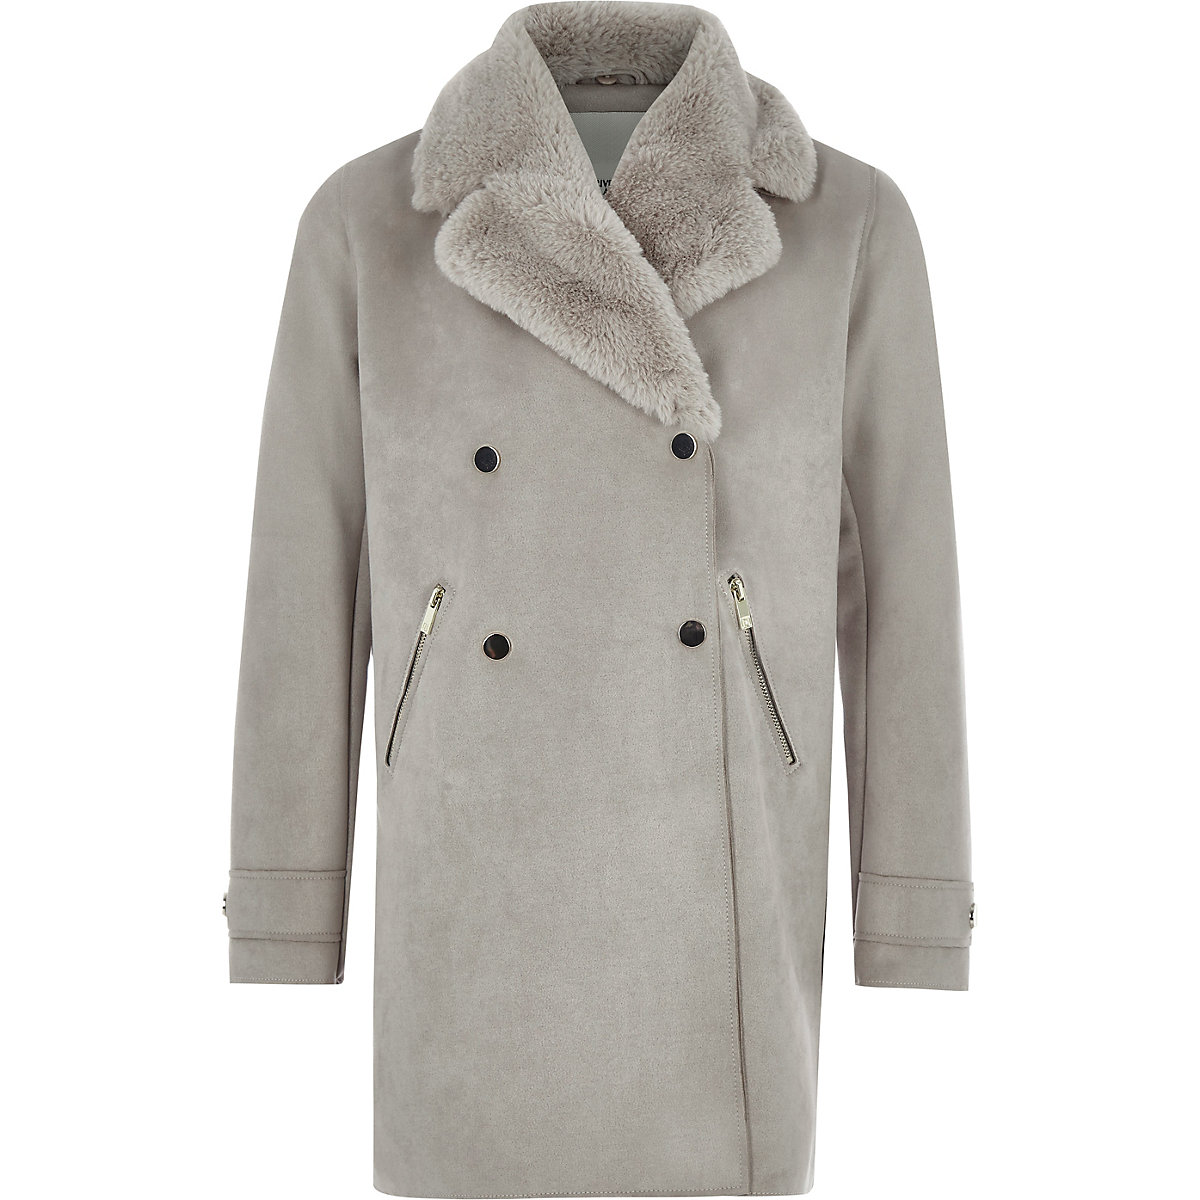 Girls grey suede faux fur collar coat